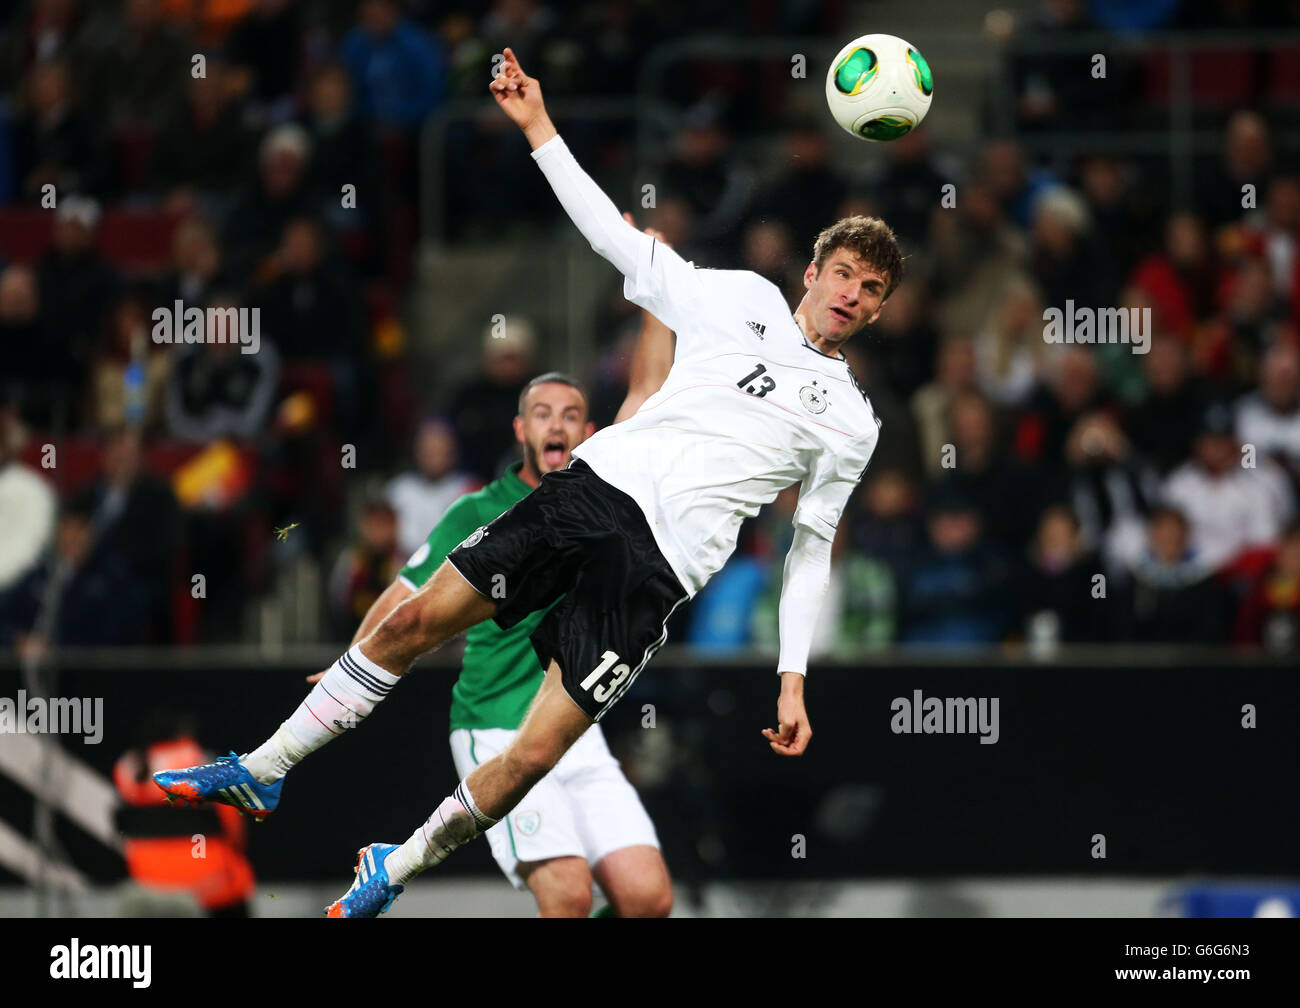 Soccer - FIFA World Cup Qualifying - Group C - Germany v Republic of Ireland - Rhein Energie Stadion - Stock Image